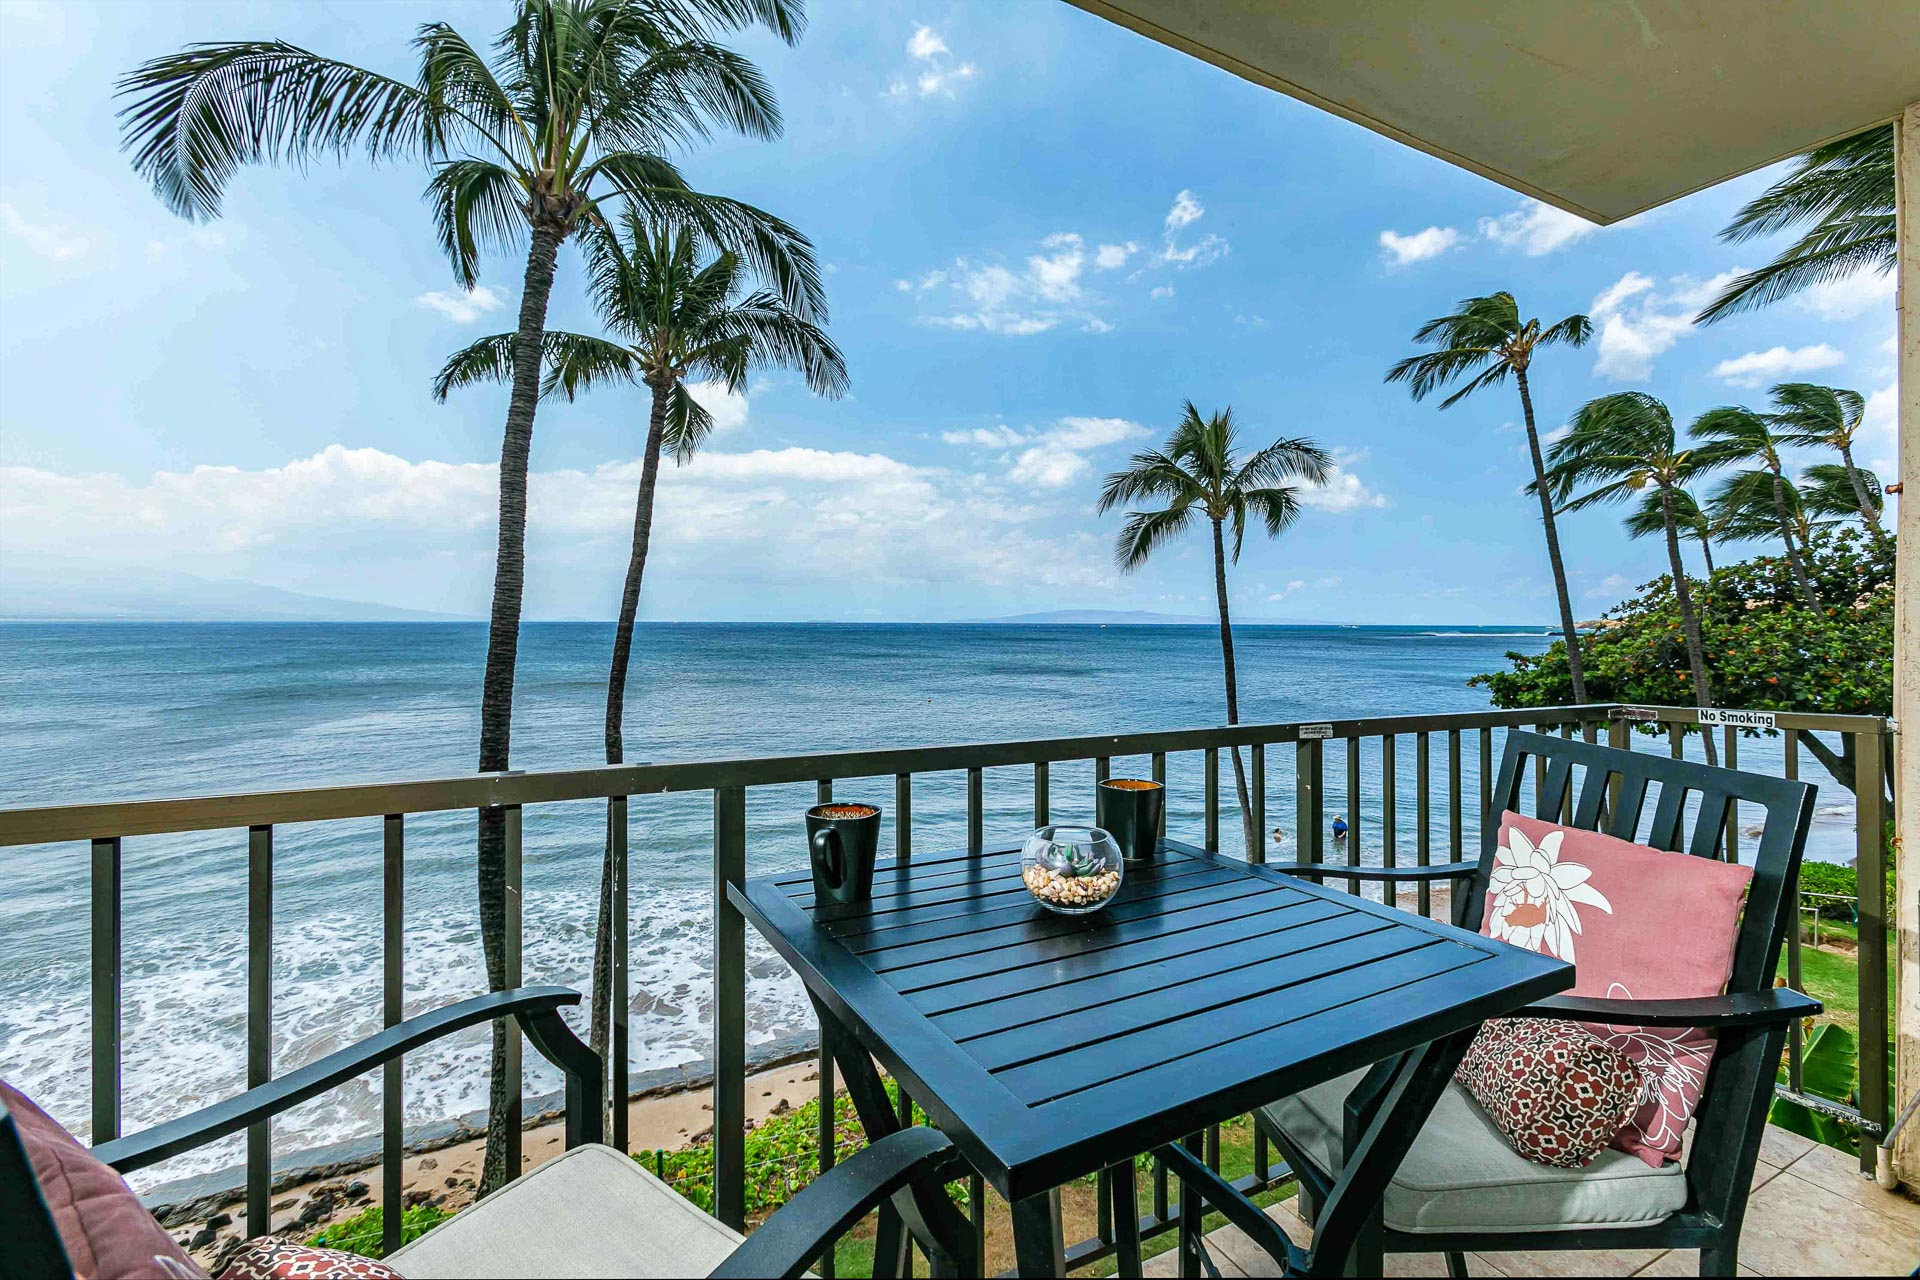 Ocean front condo! Spectacular views of the ocean, Sugar Beach, Molokini Crater, sunrise over Mount Haleakala, The West Maui Mountains and distant island of Lanai